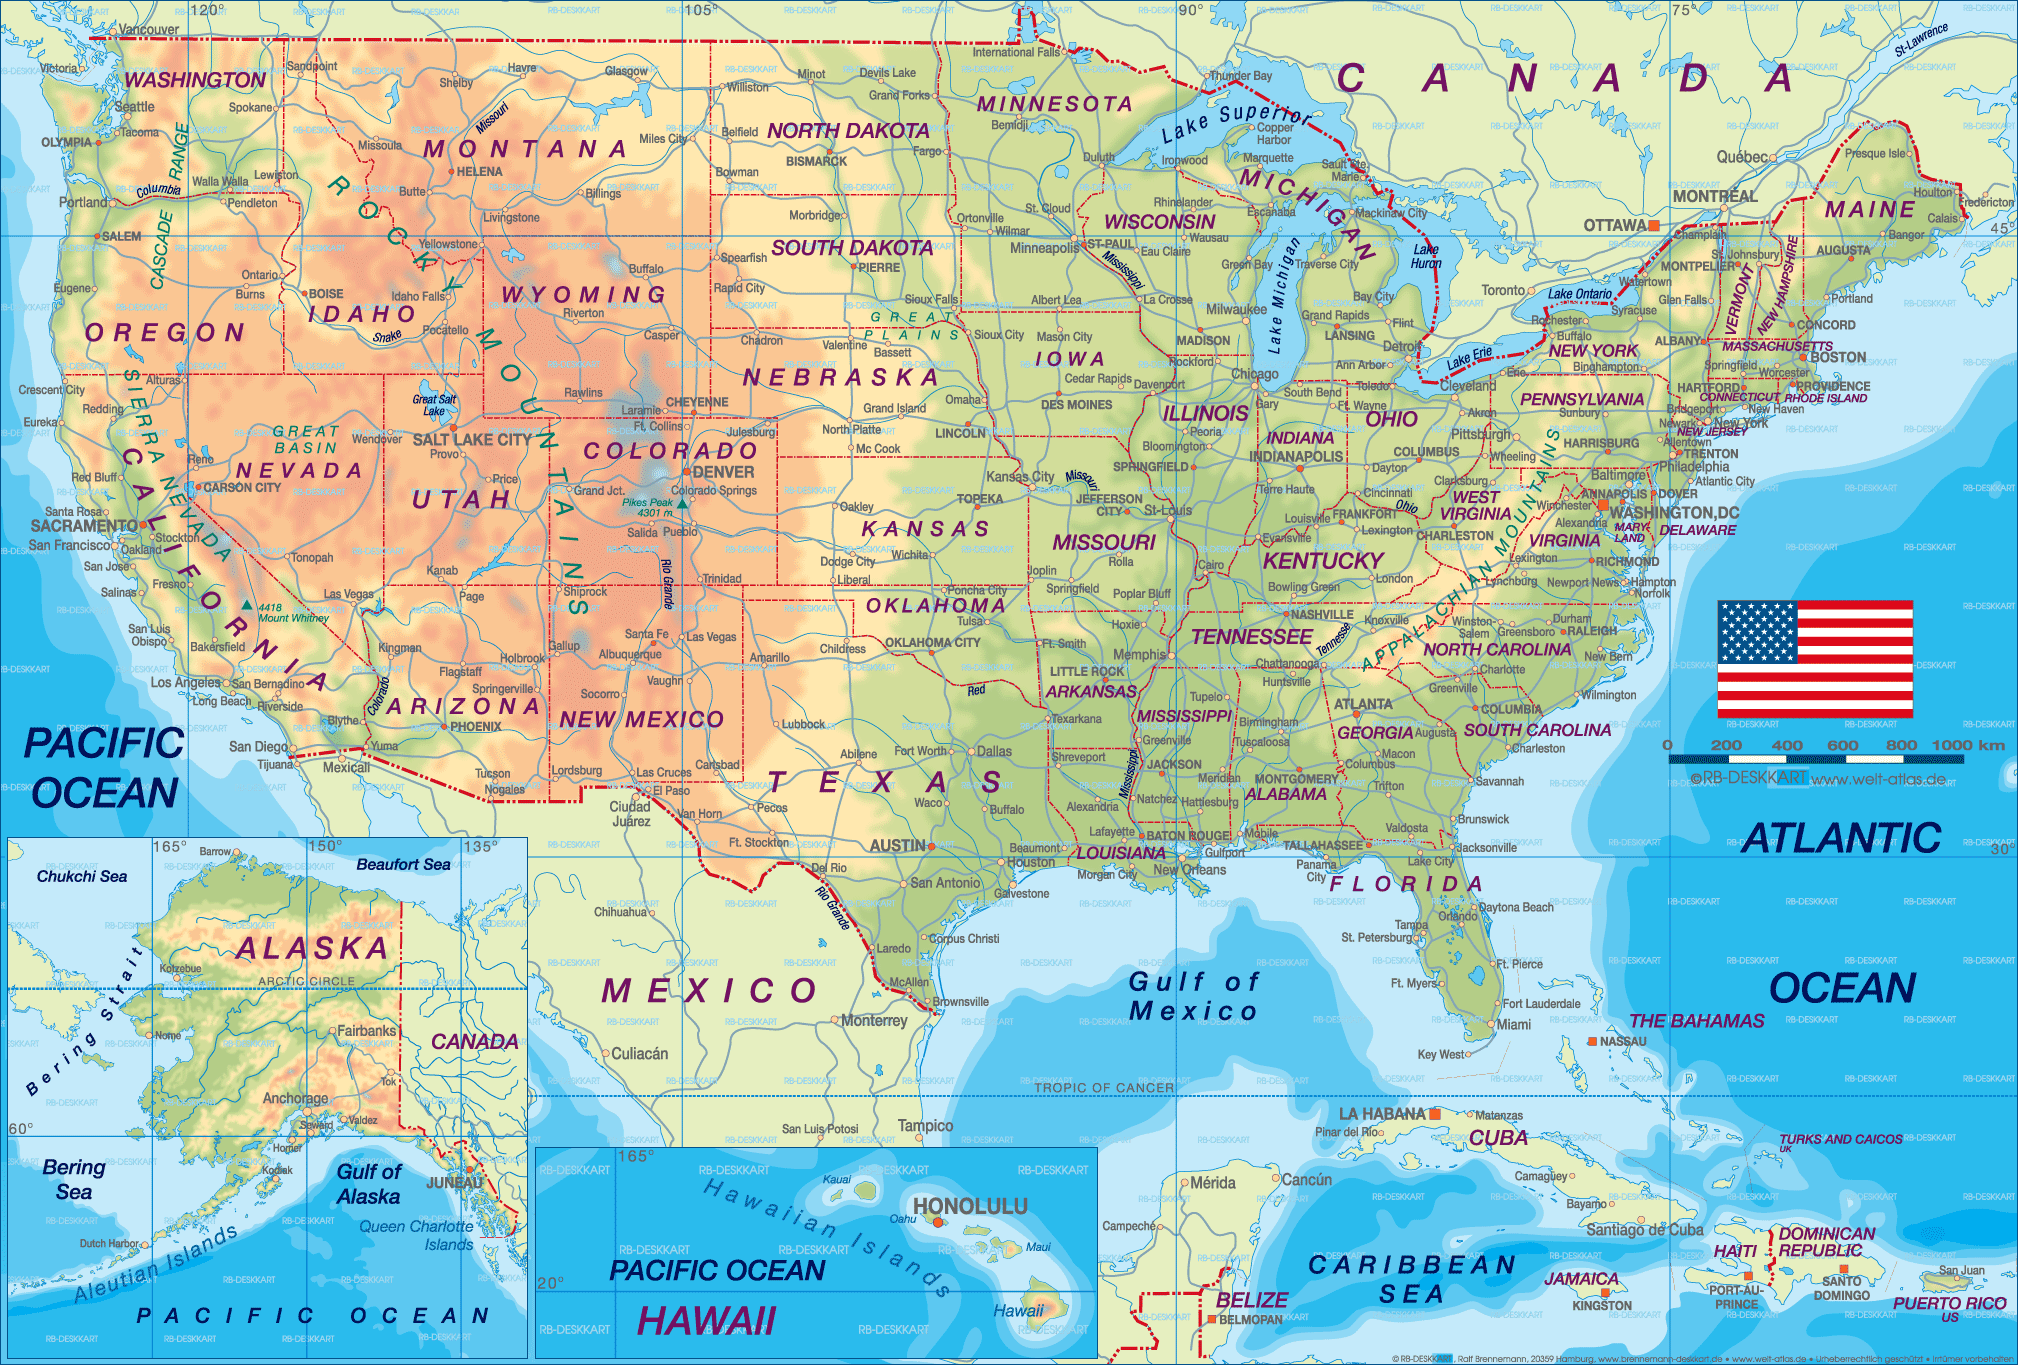 United States Cities Map Mapsofnet - Us map with cities and rivers